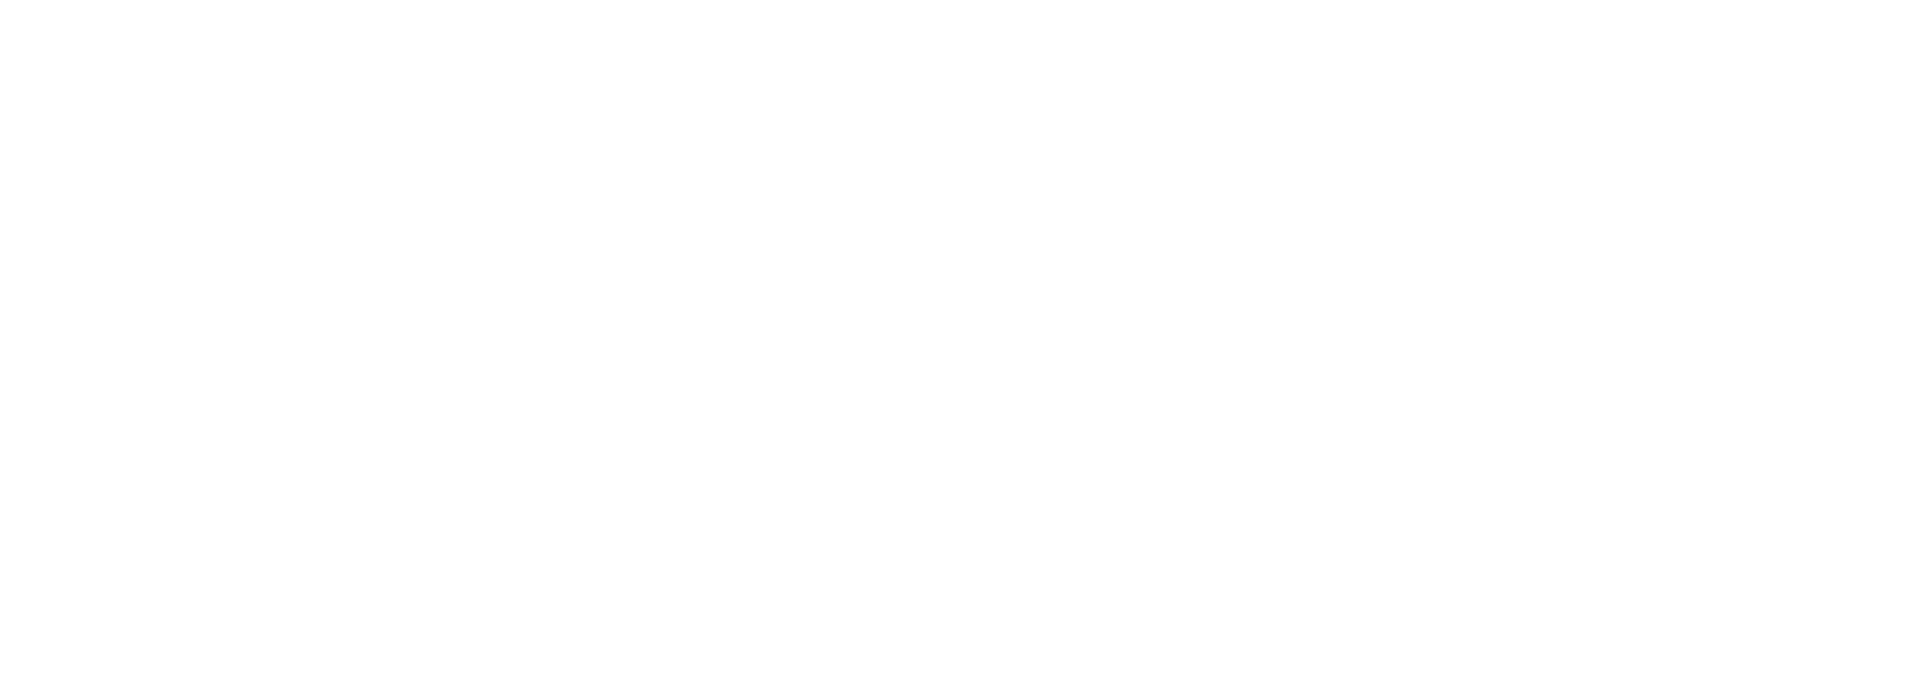 The choice is yours. You decide the clients (and the candidates) you are going to work with.